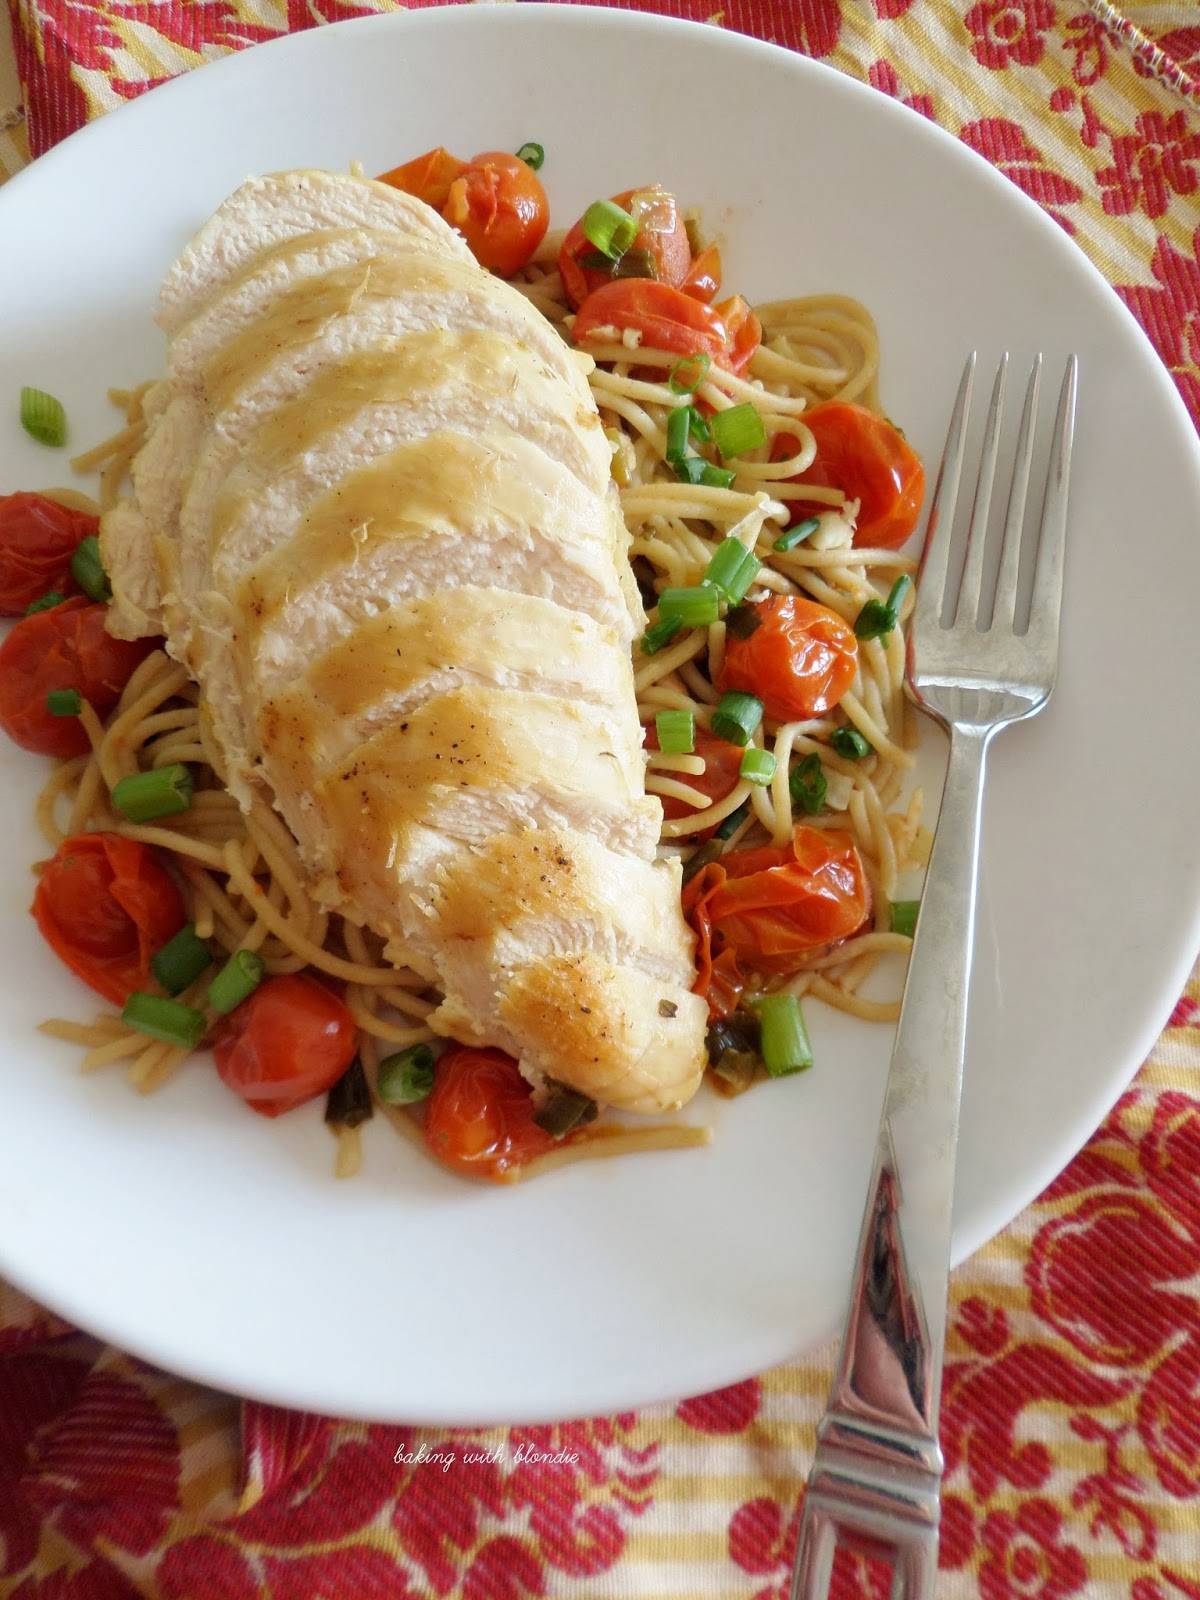 Pan Seared Chicken Breast With Whole Grain Pasta And Cherry Tomatoes